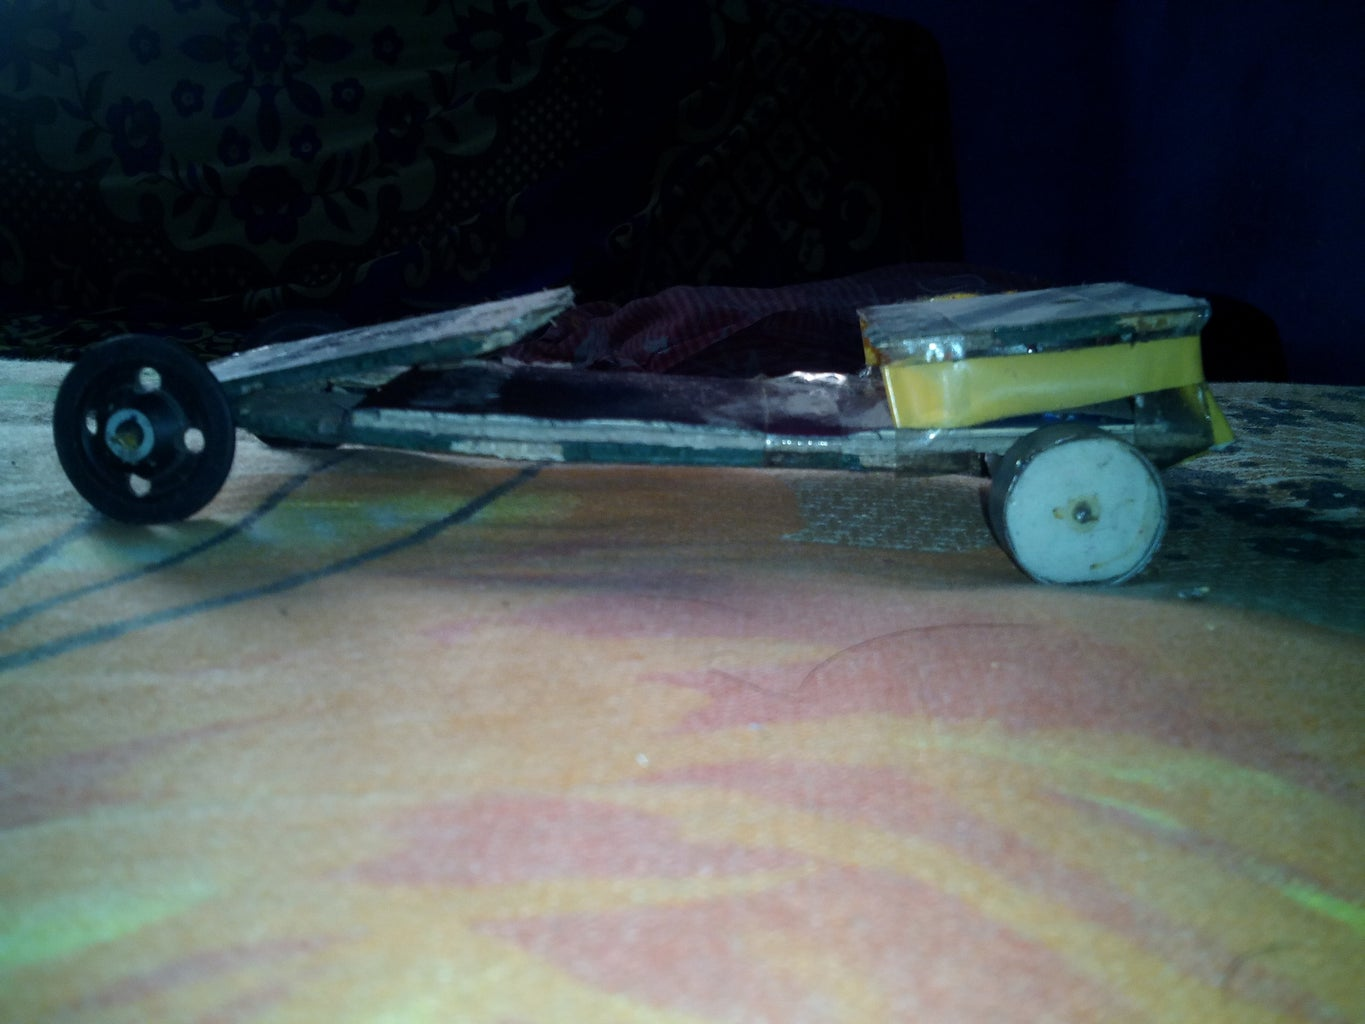 How to Make a R.c Robotic Car at Home